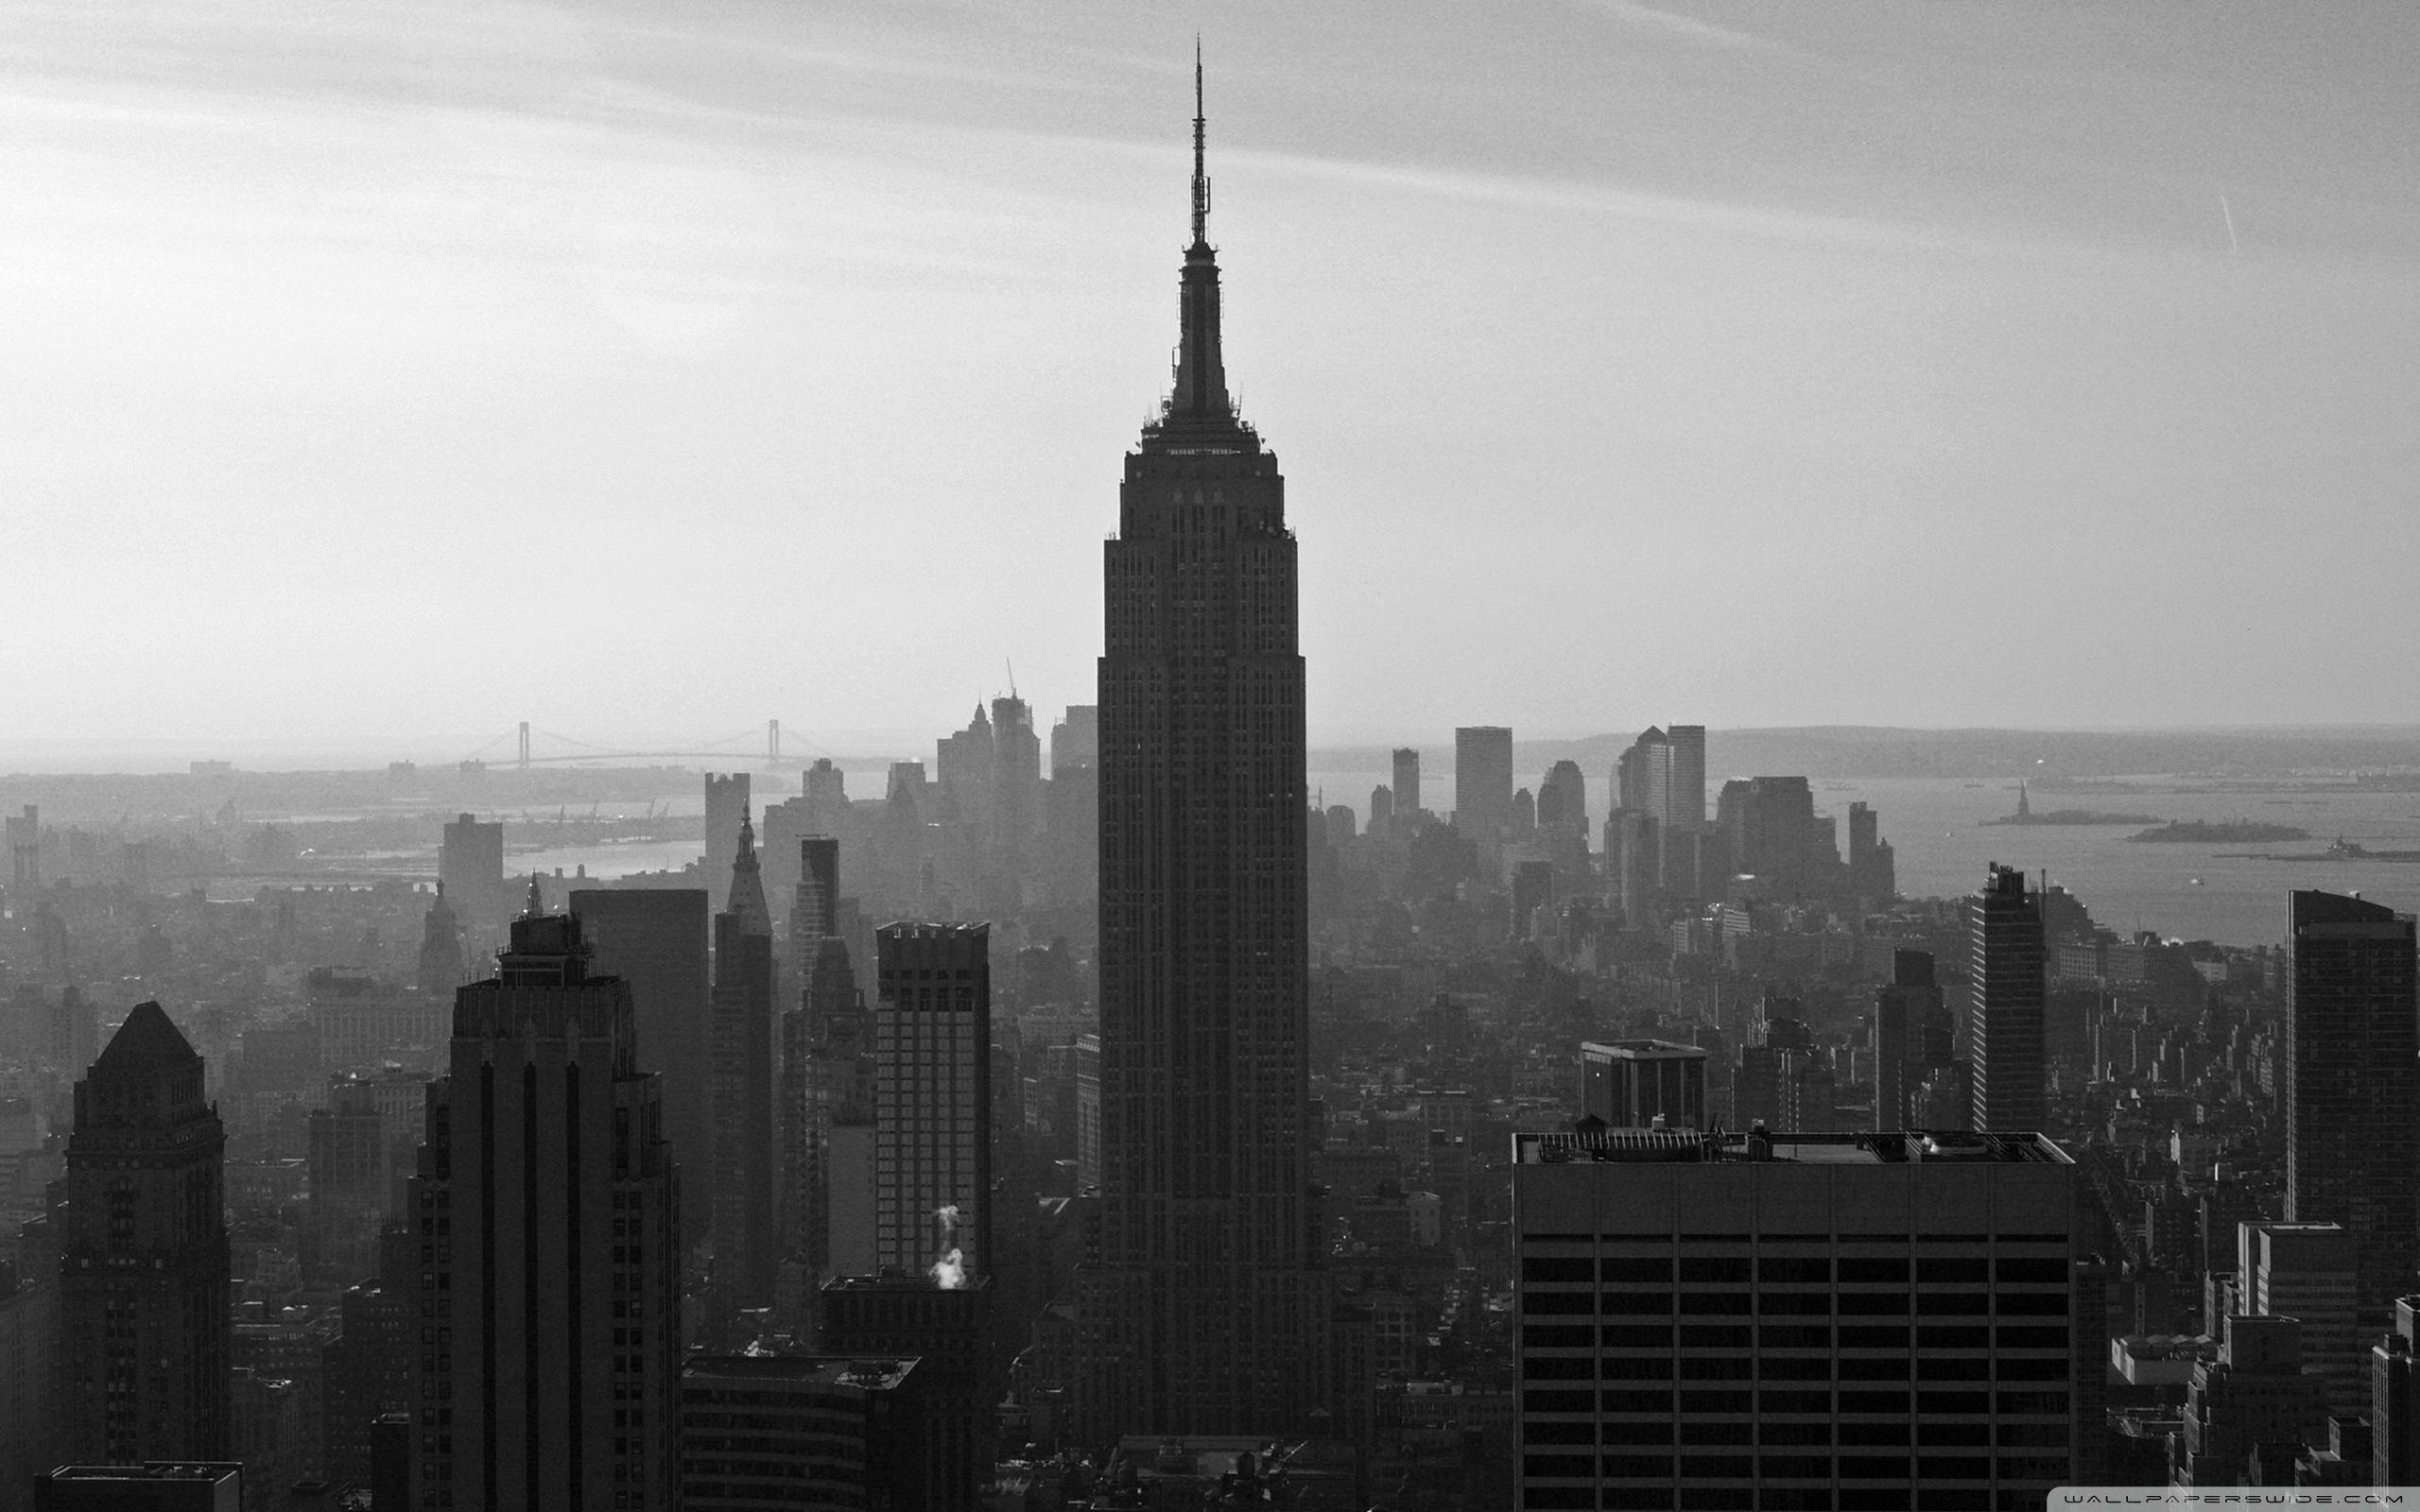 Empire State Building HD desktop wallpapers : High Definition